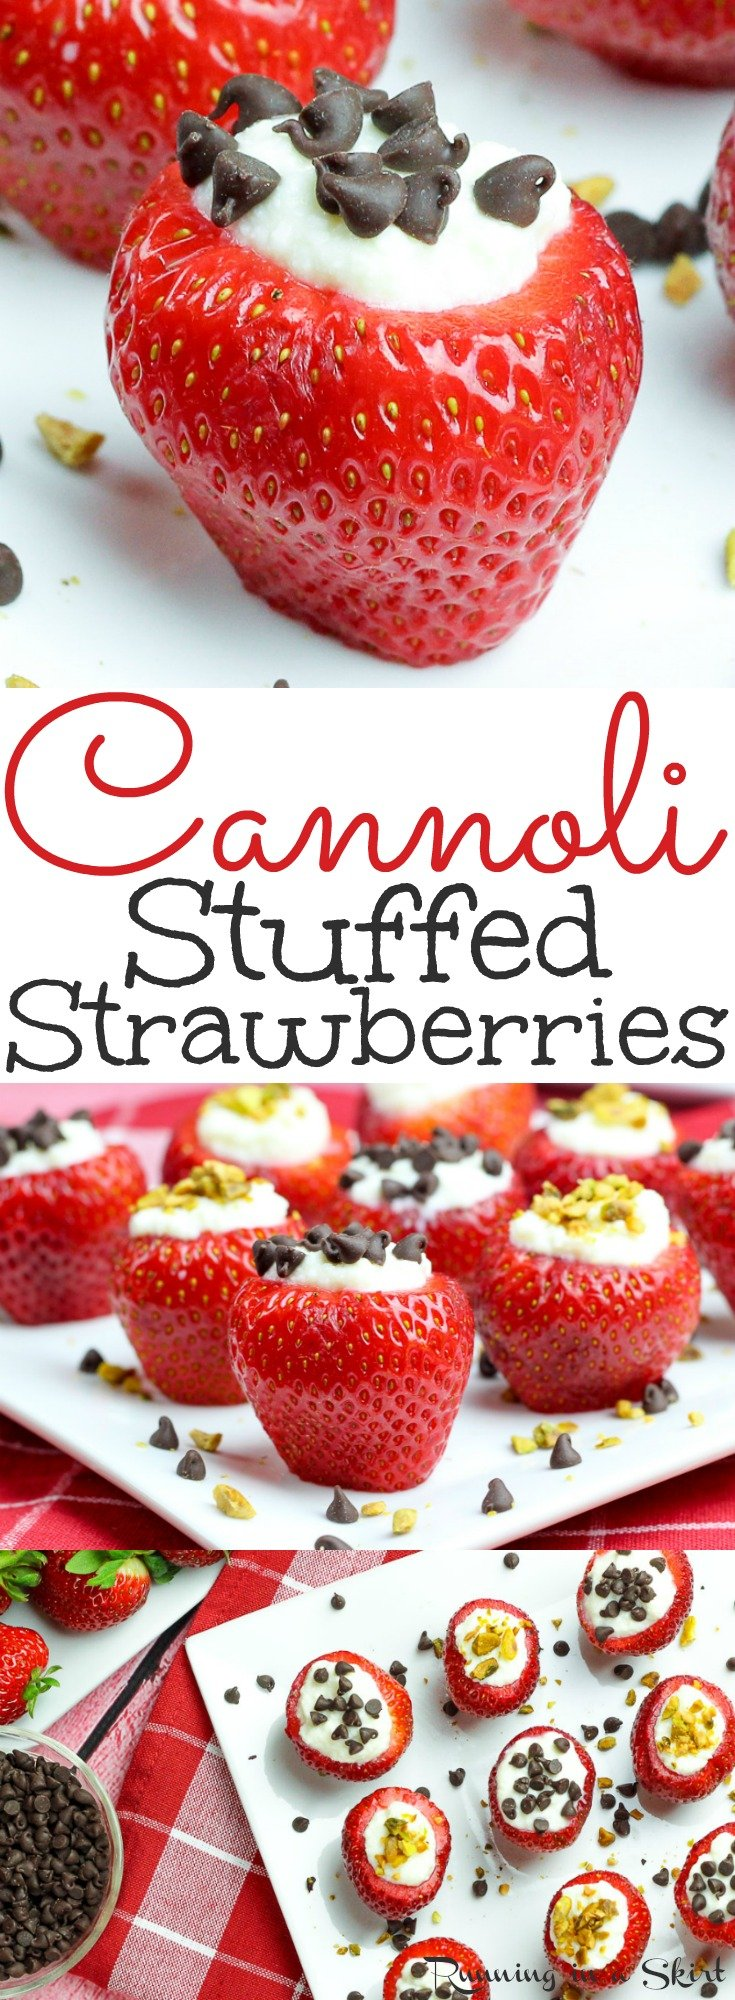 Easy & Healthy Cannoli Stuffed Strawberries recipe - a simple, low carb dessert with classic ricotta stuffing! These berries are the perfect fruit treats for summer parties like 4th of July, Memorial Day or Labor Day- also Valentine's Day! Also gluten free. / Running in a Skirt via @juliewunder